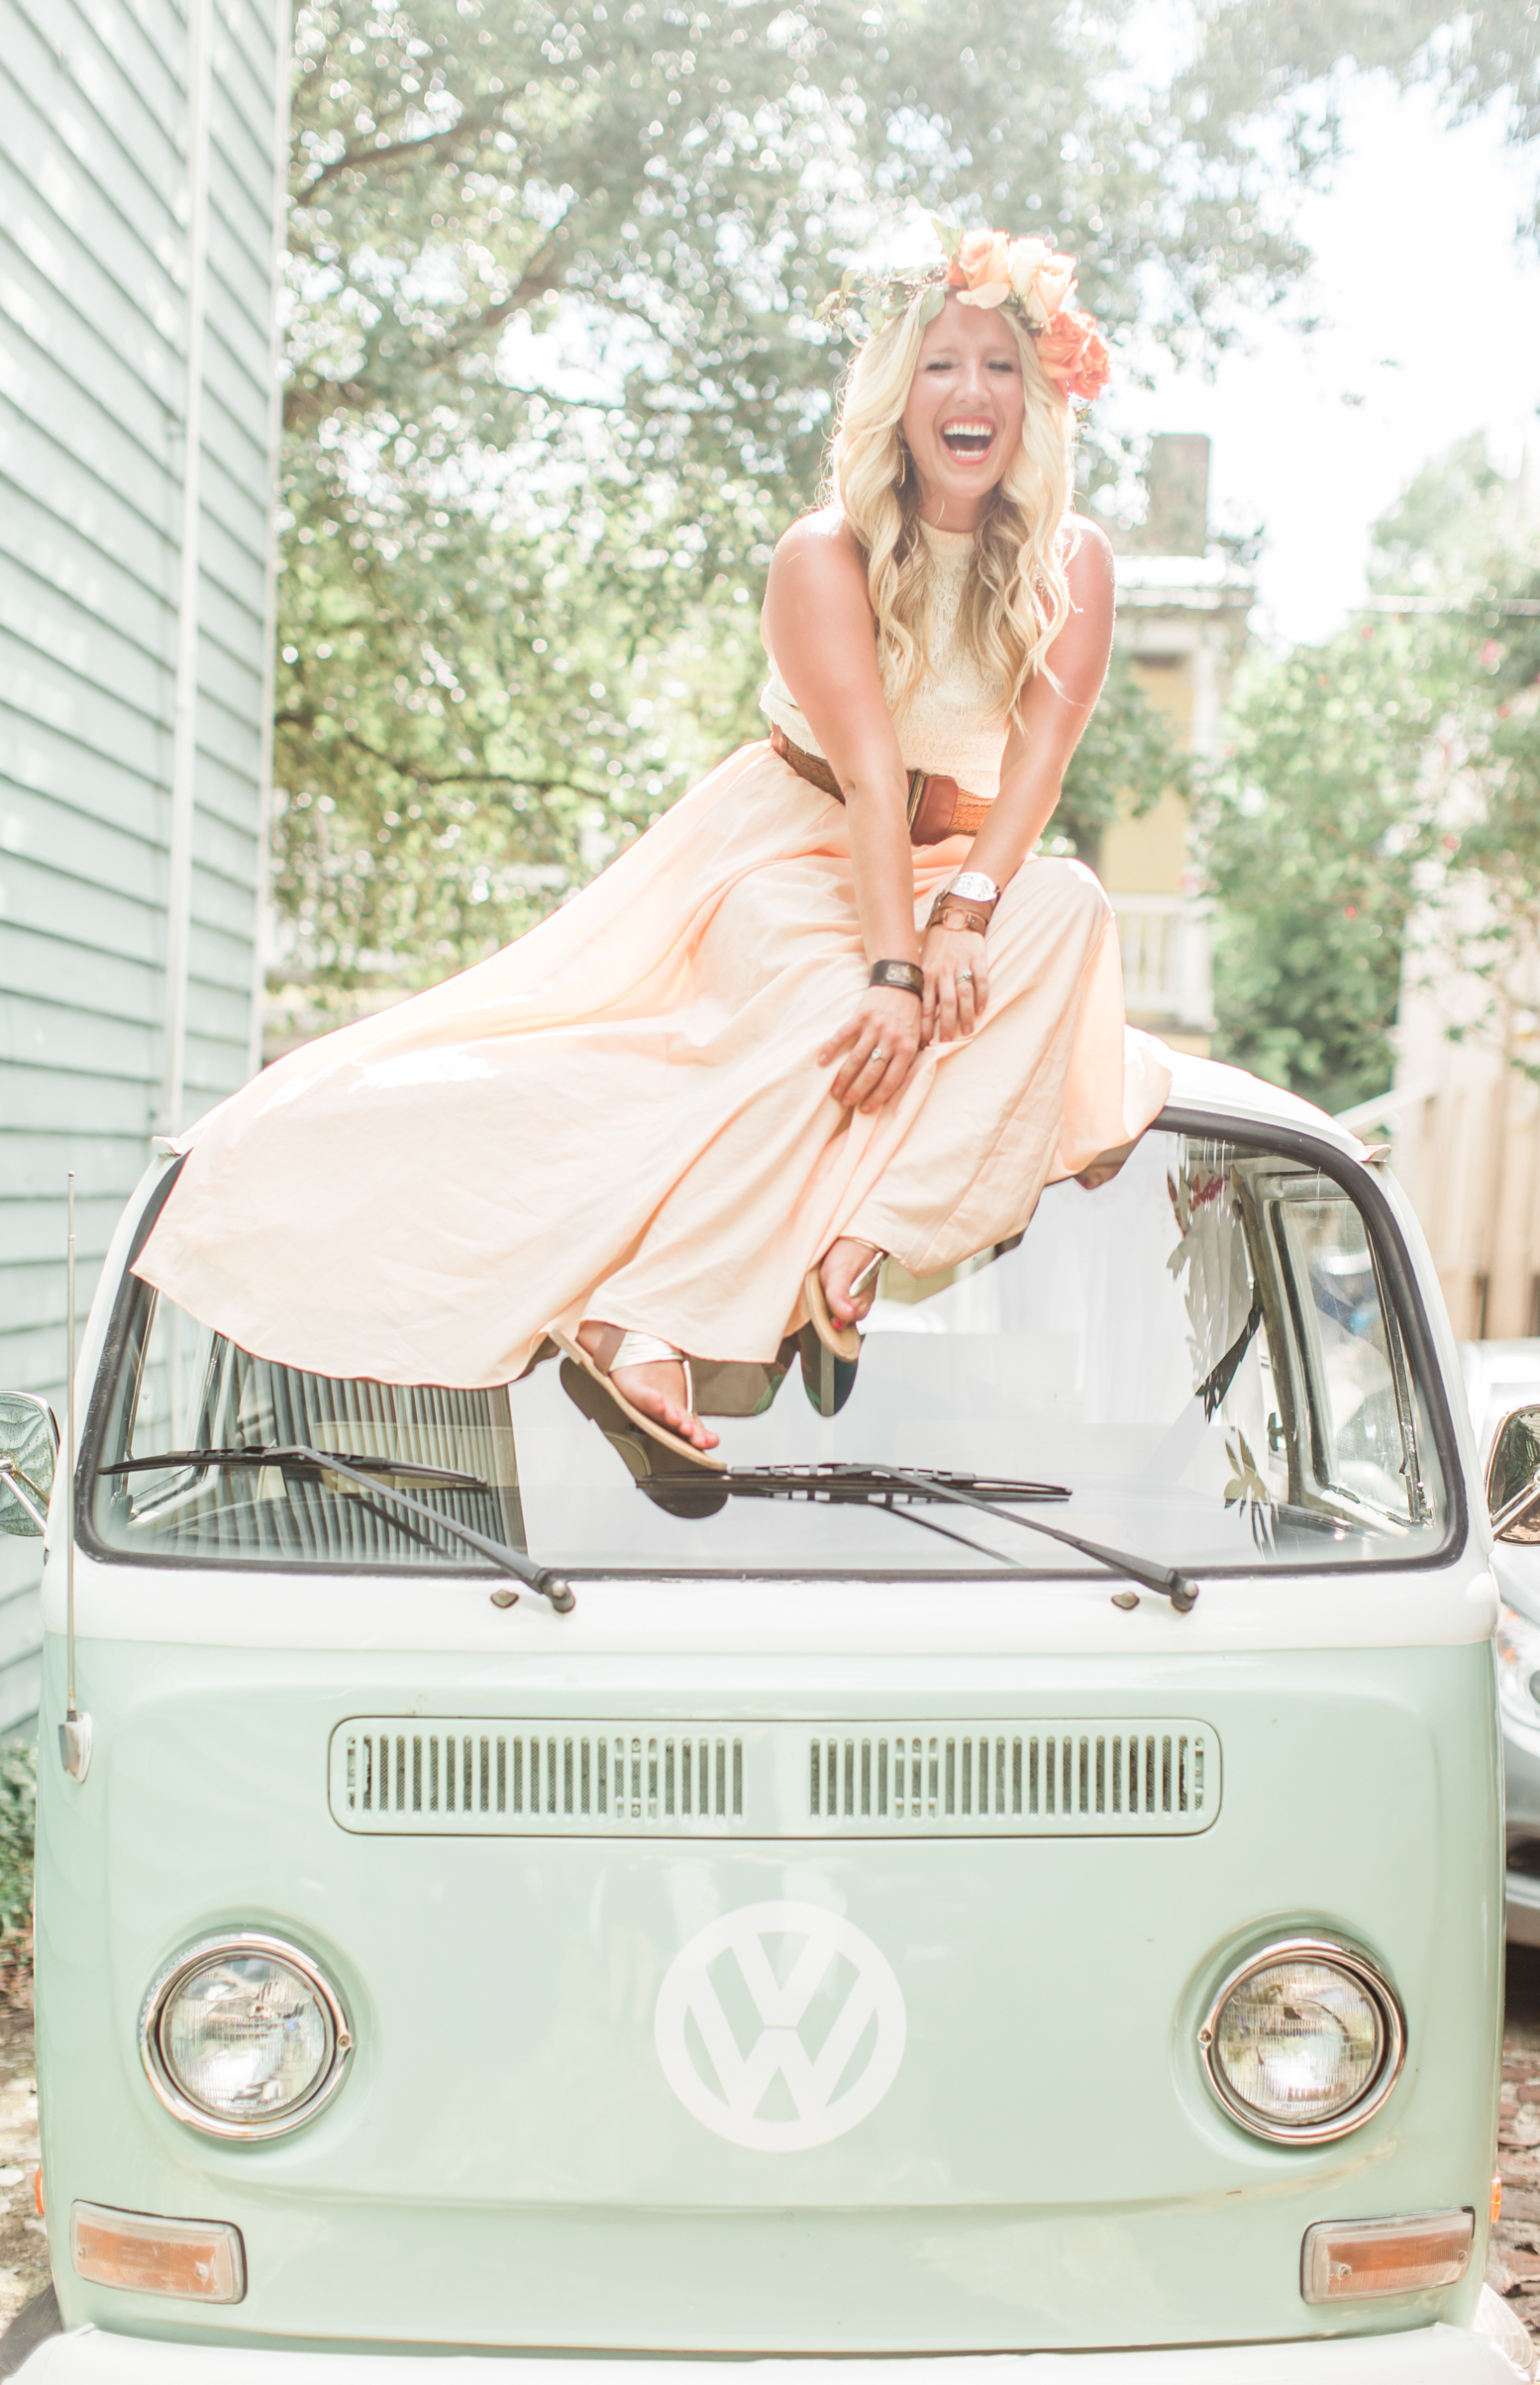 Model:  Kayla Maye  VW Bus:  Lil Photo Bus Co.  Floral Crown:  Ginger & Blooms